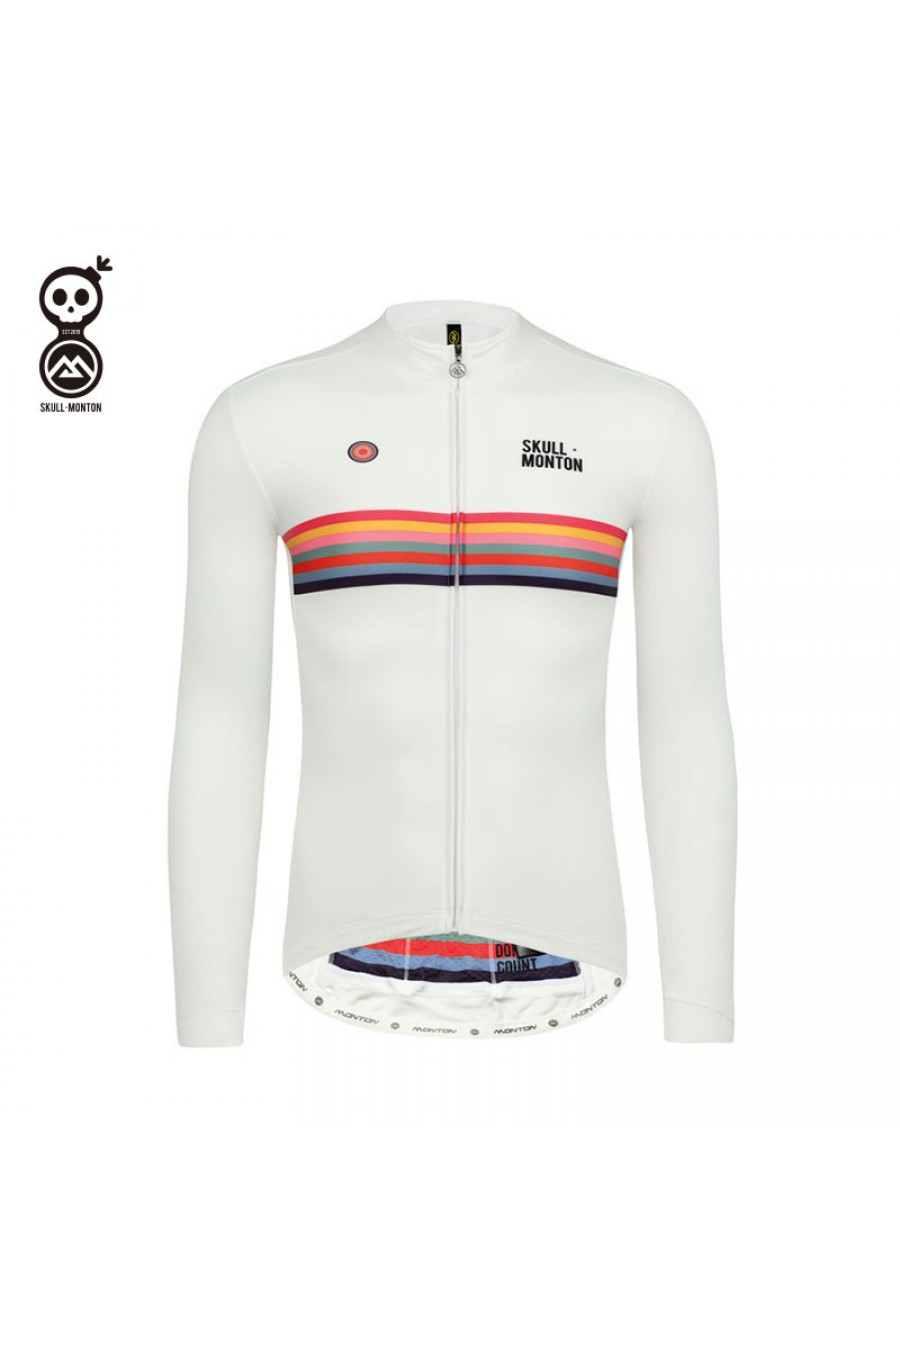 Details about  /Weimostar Cycling Jersey Mens Large Full Zip